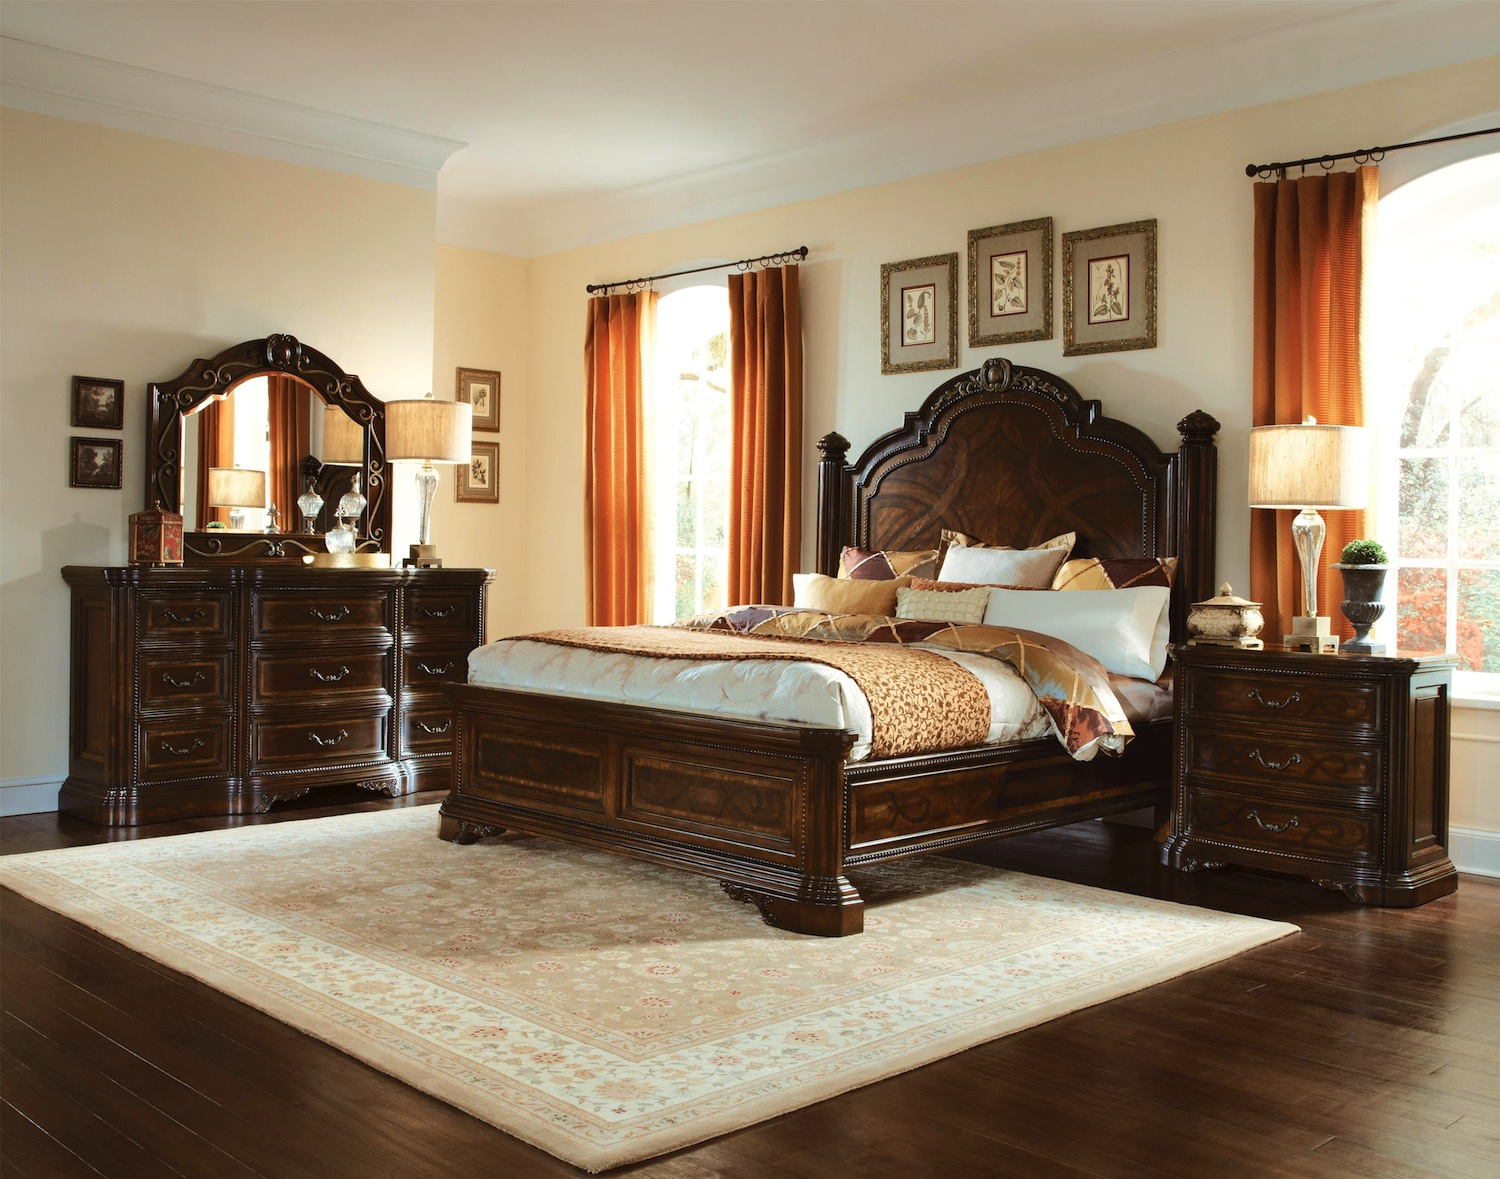 Valencia carved wood traditional bedroom furniture set 209000 for Traditional bedroom furniture